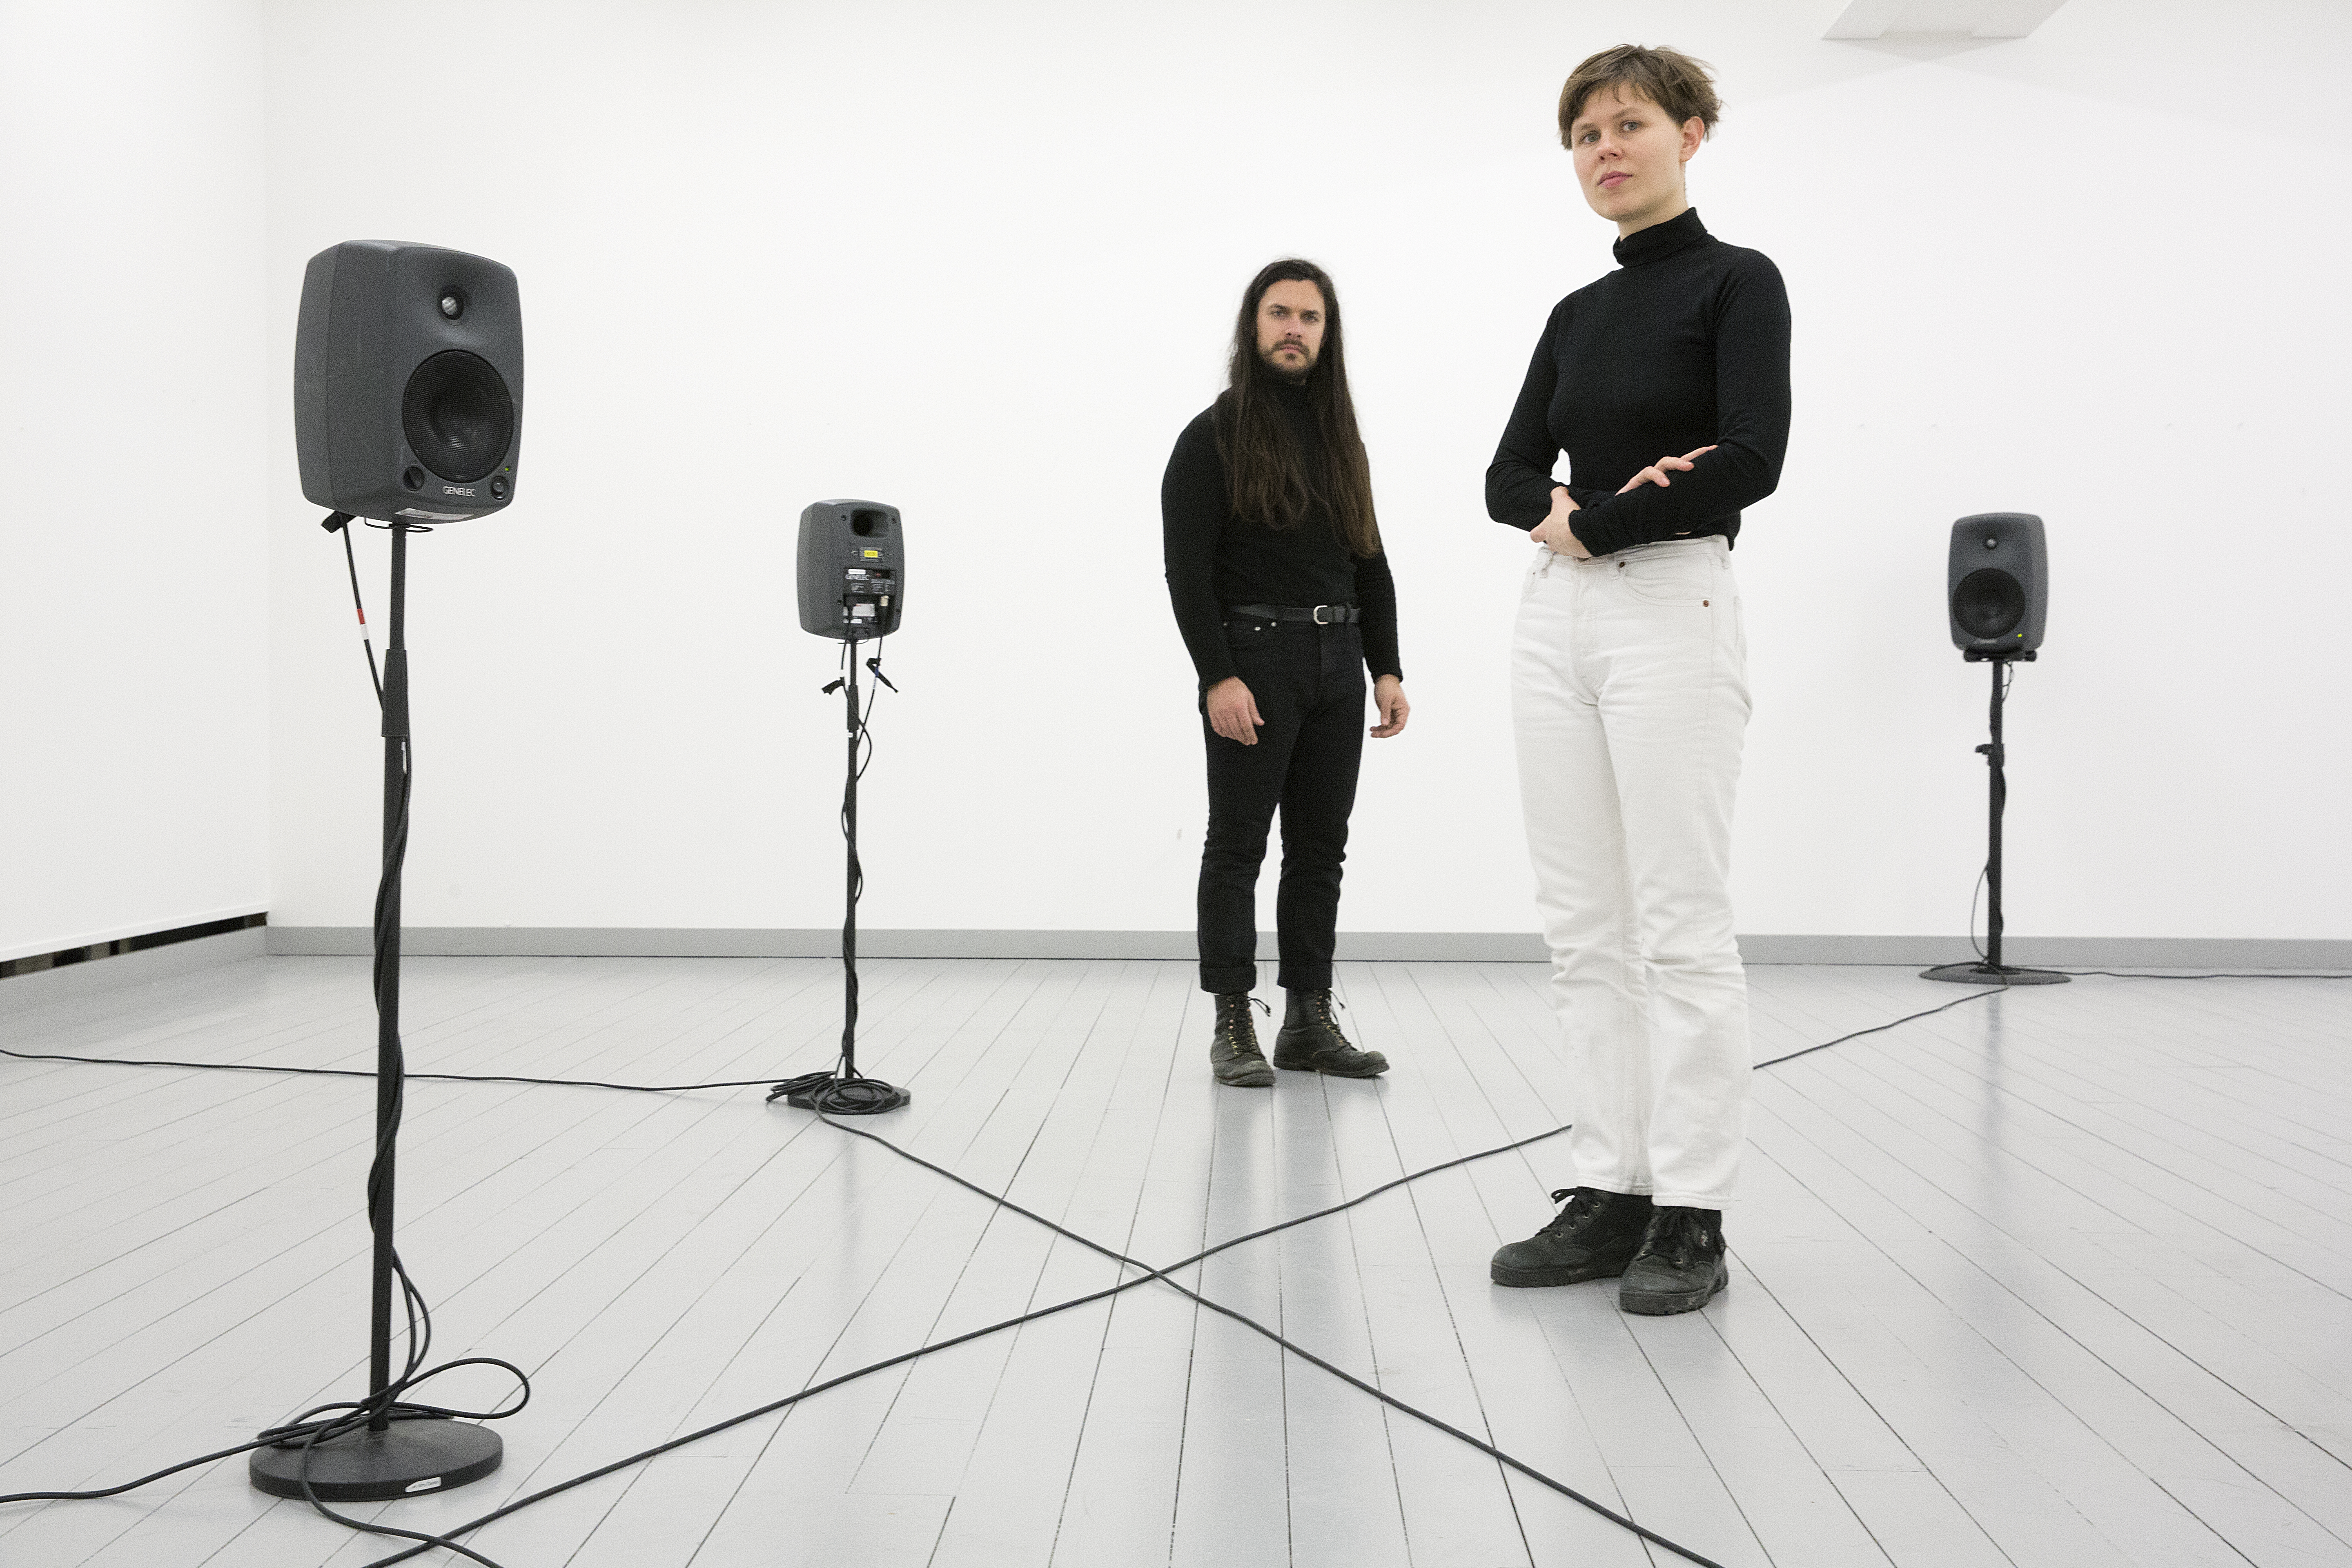 Ragnhild May and Stefan Maier at Inter Arts Center in Malmö